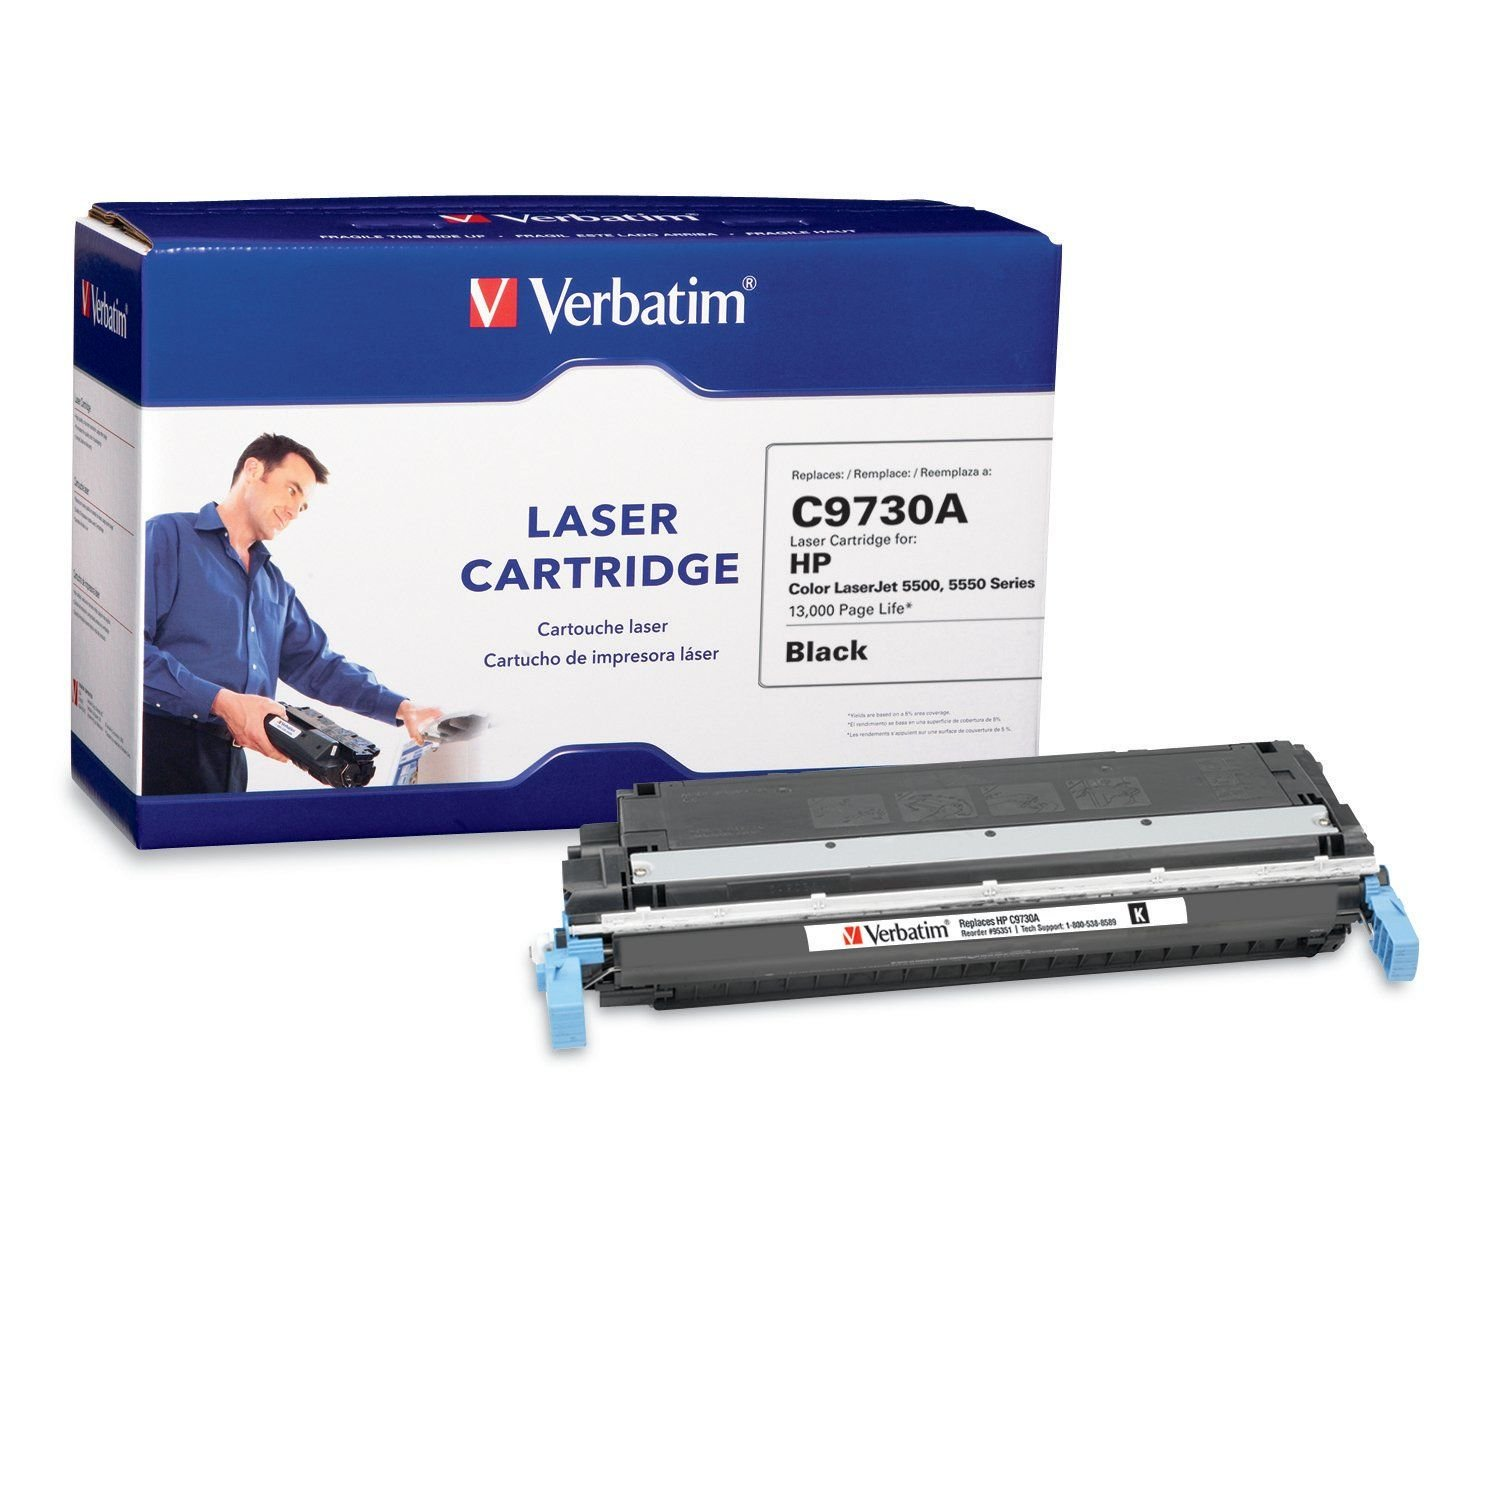 Verbatim Laser Toner Cartridge Replacement for HP C9730A - Compatible with LaserJet 5500 / 5550 Series - Black